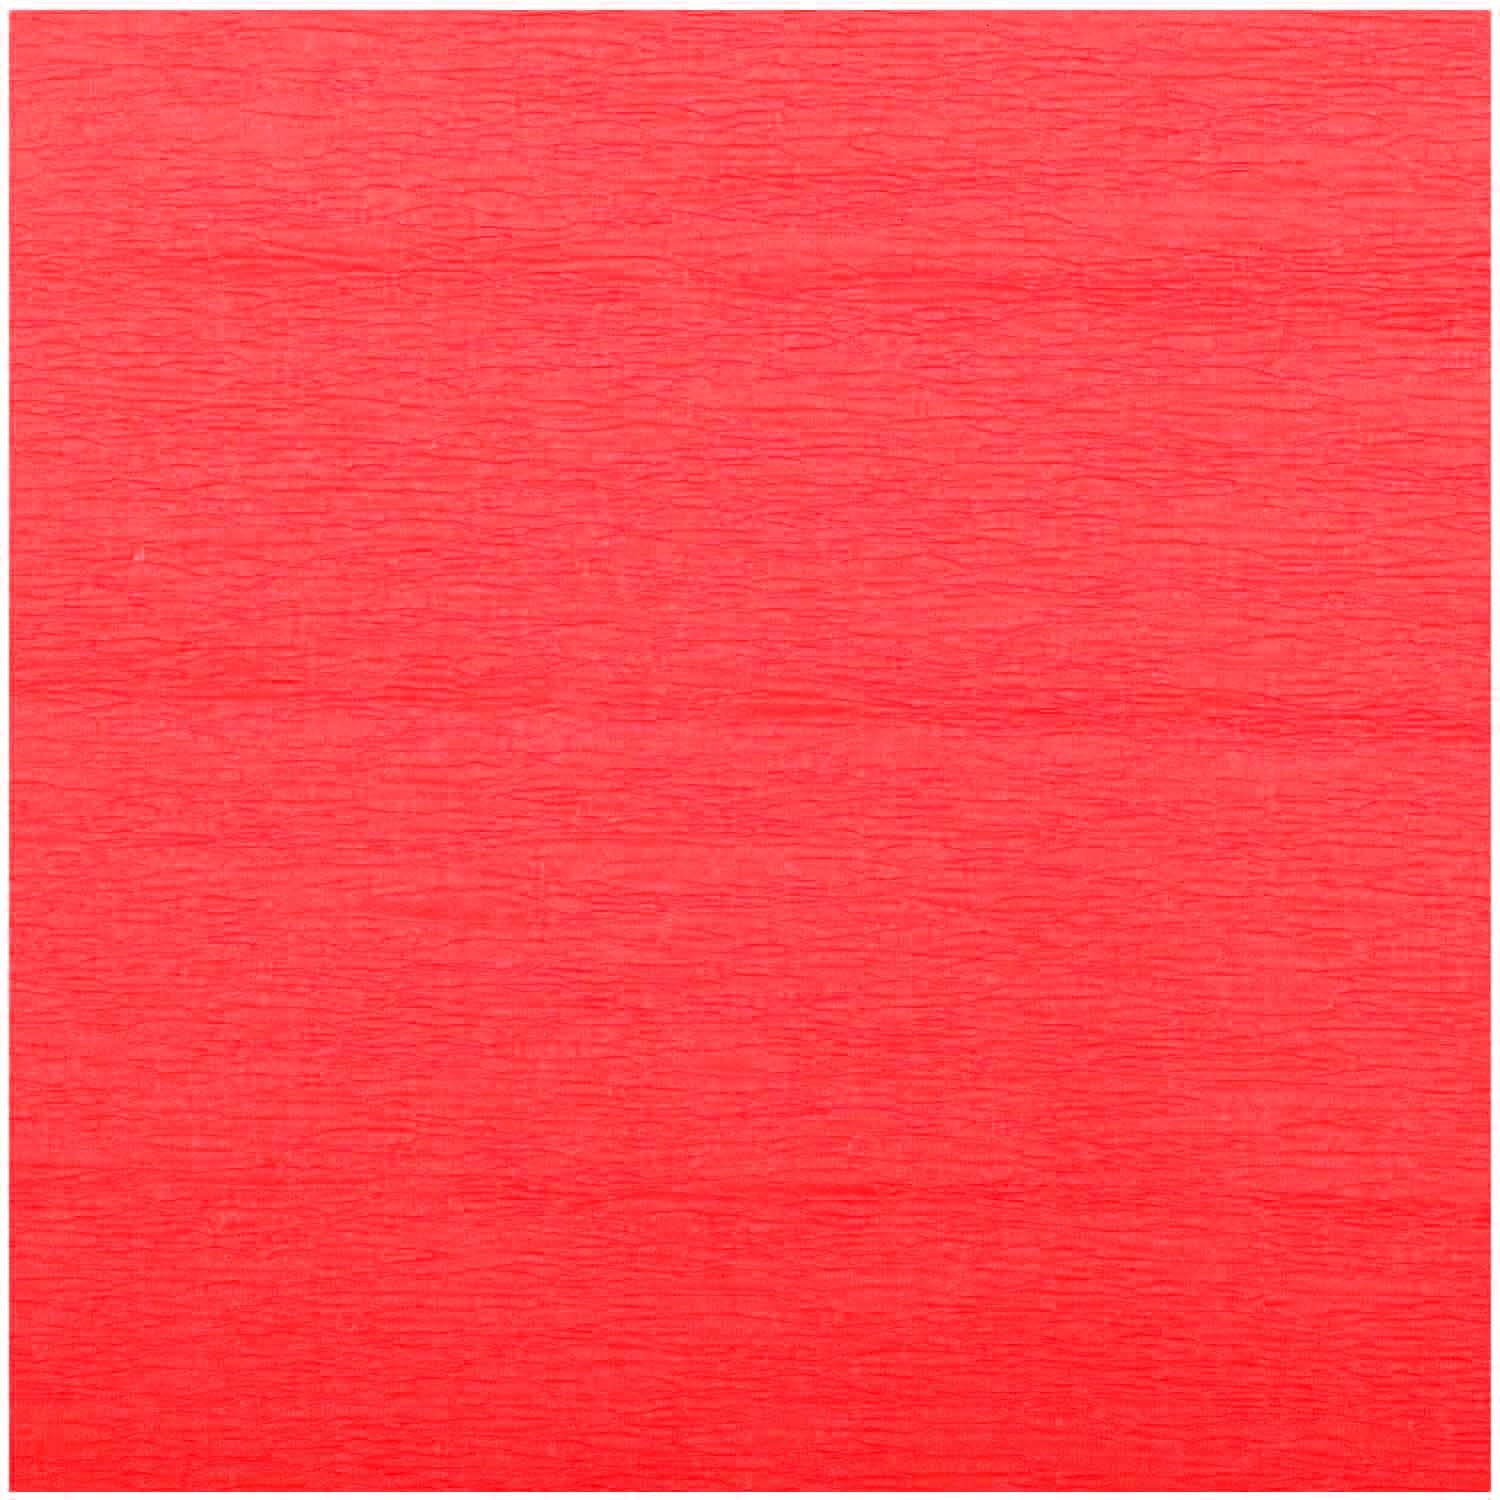 Rico NAY CREPE PAPER, NEON RED 50 X 250 CM